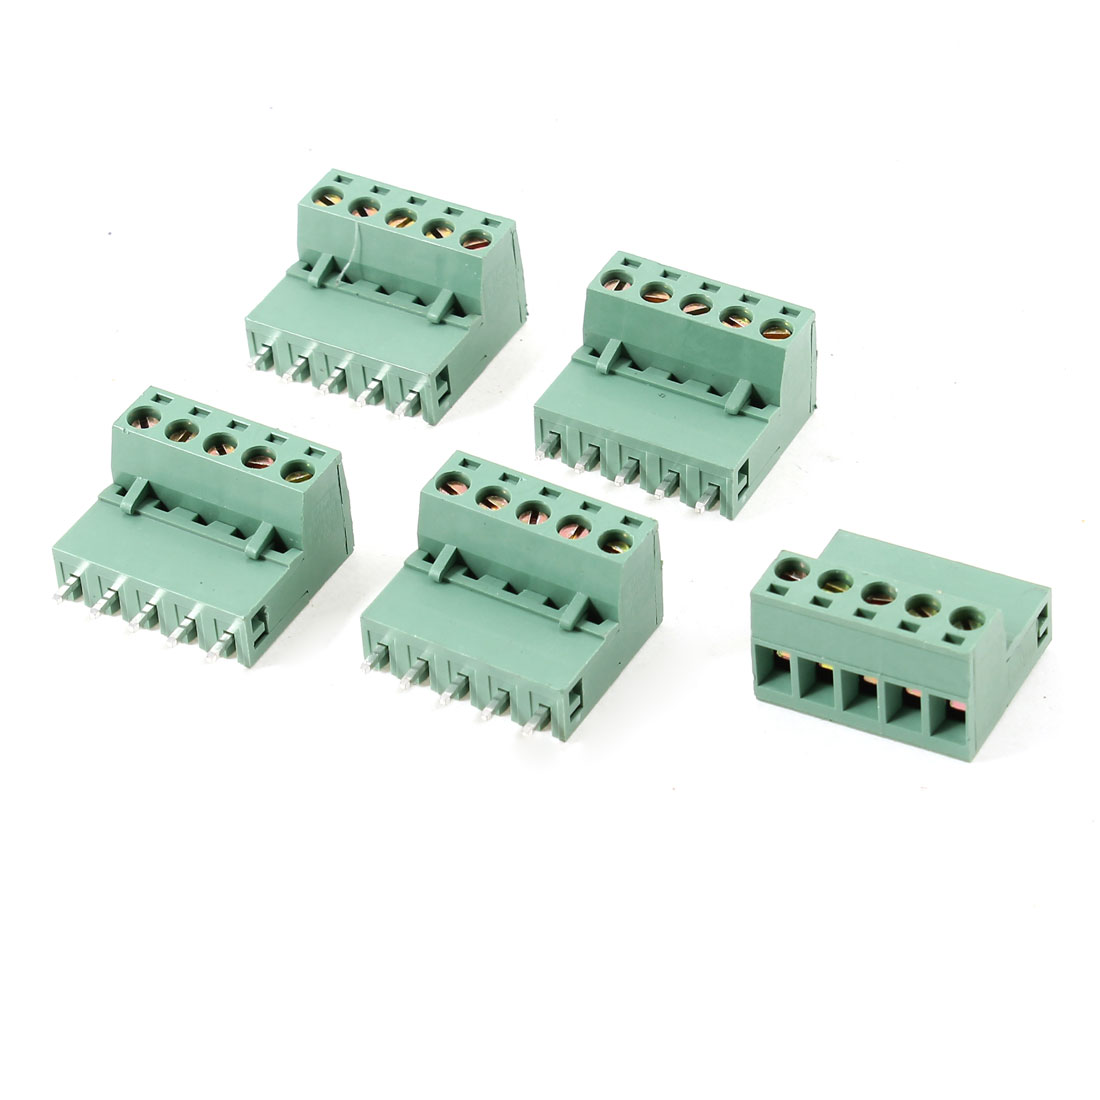 5 Pcs 5 Pins 5.08mm Spacing Screw Pluggable Terminal Block Connector